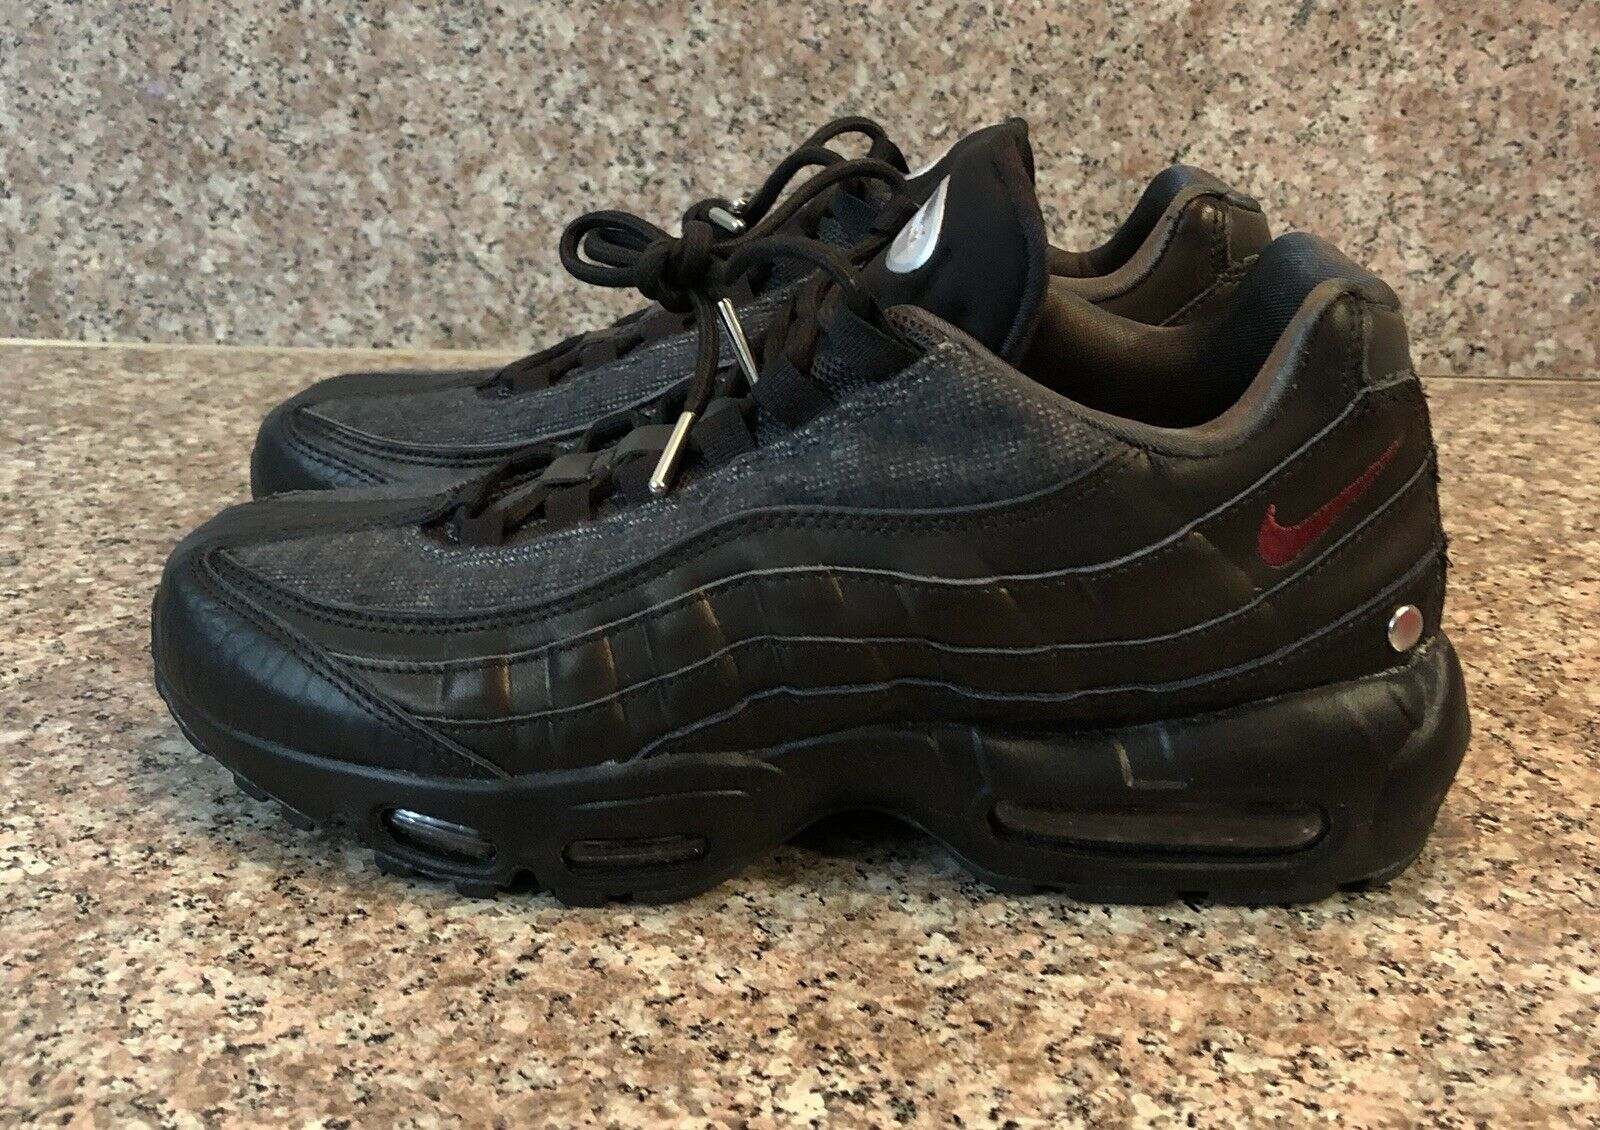 adaa535743 Nike Air Max 95 NRG Jacket Pack Men's Size 8.5 Black Red 3M AT6146 001 NEW